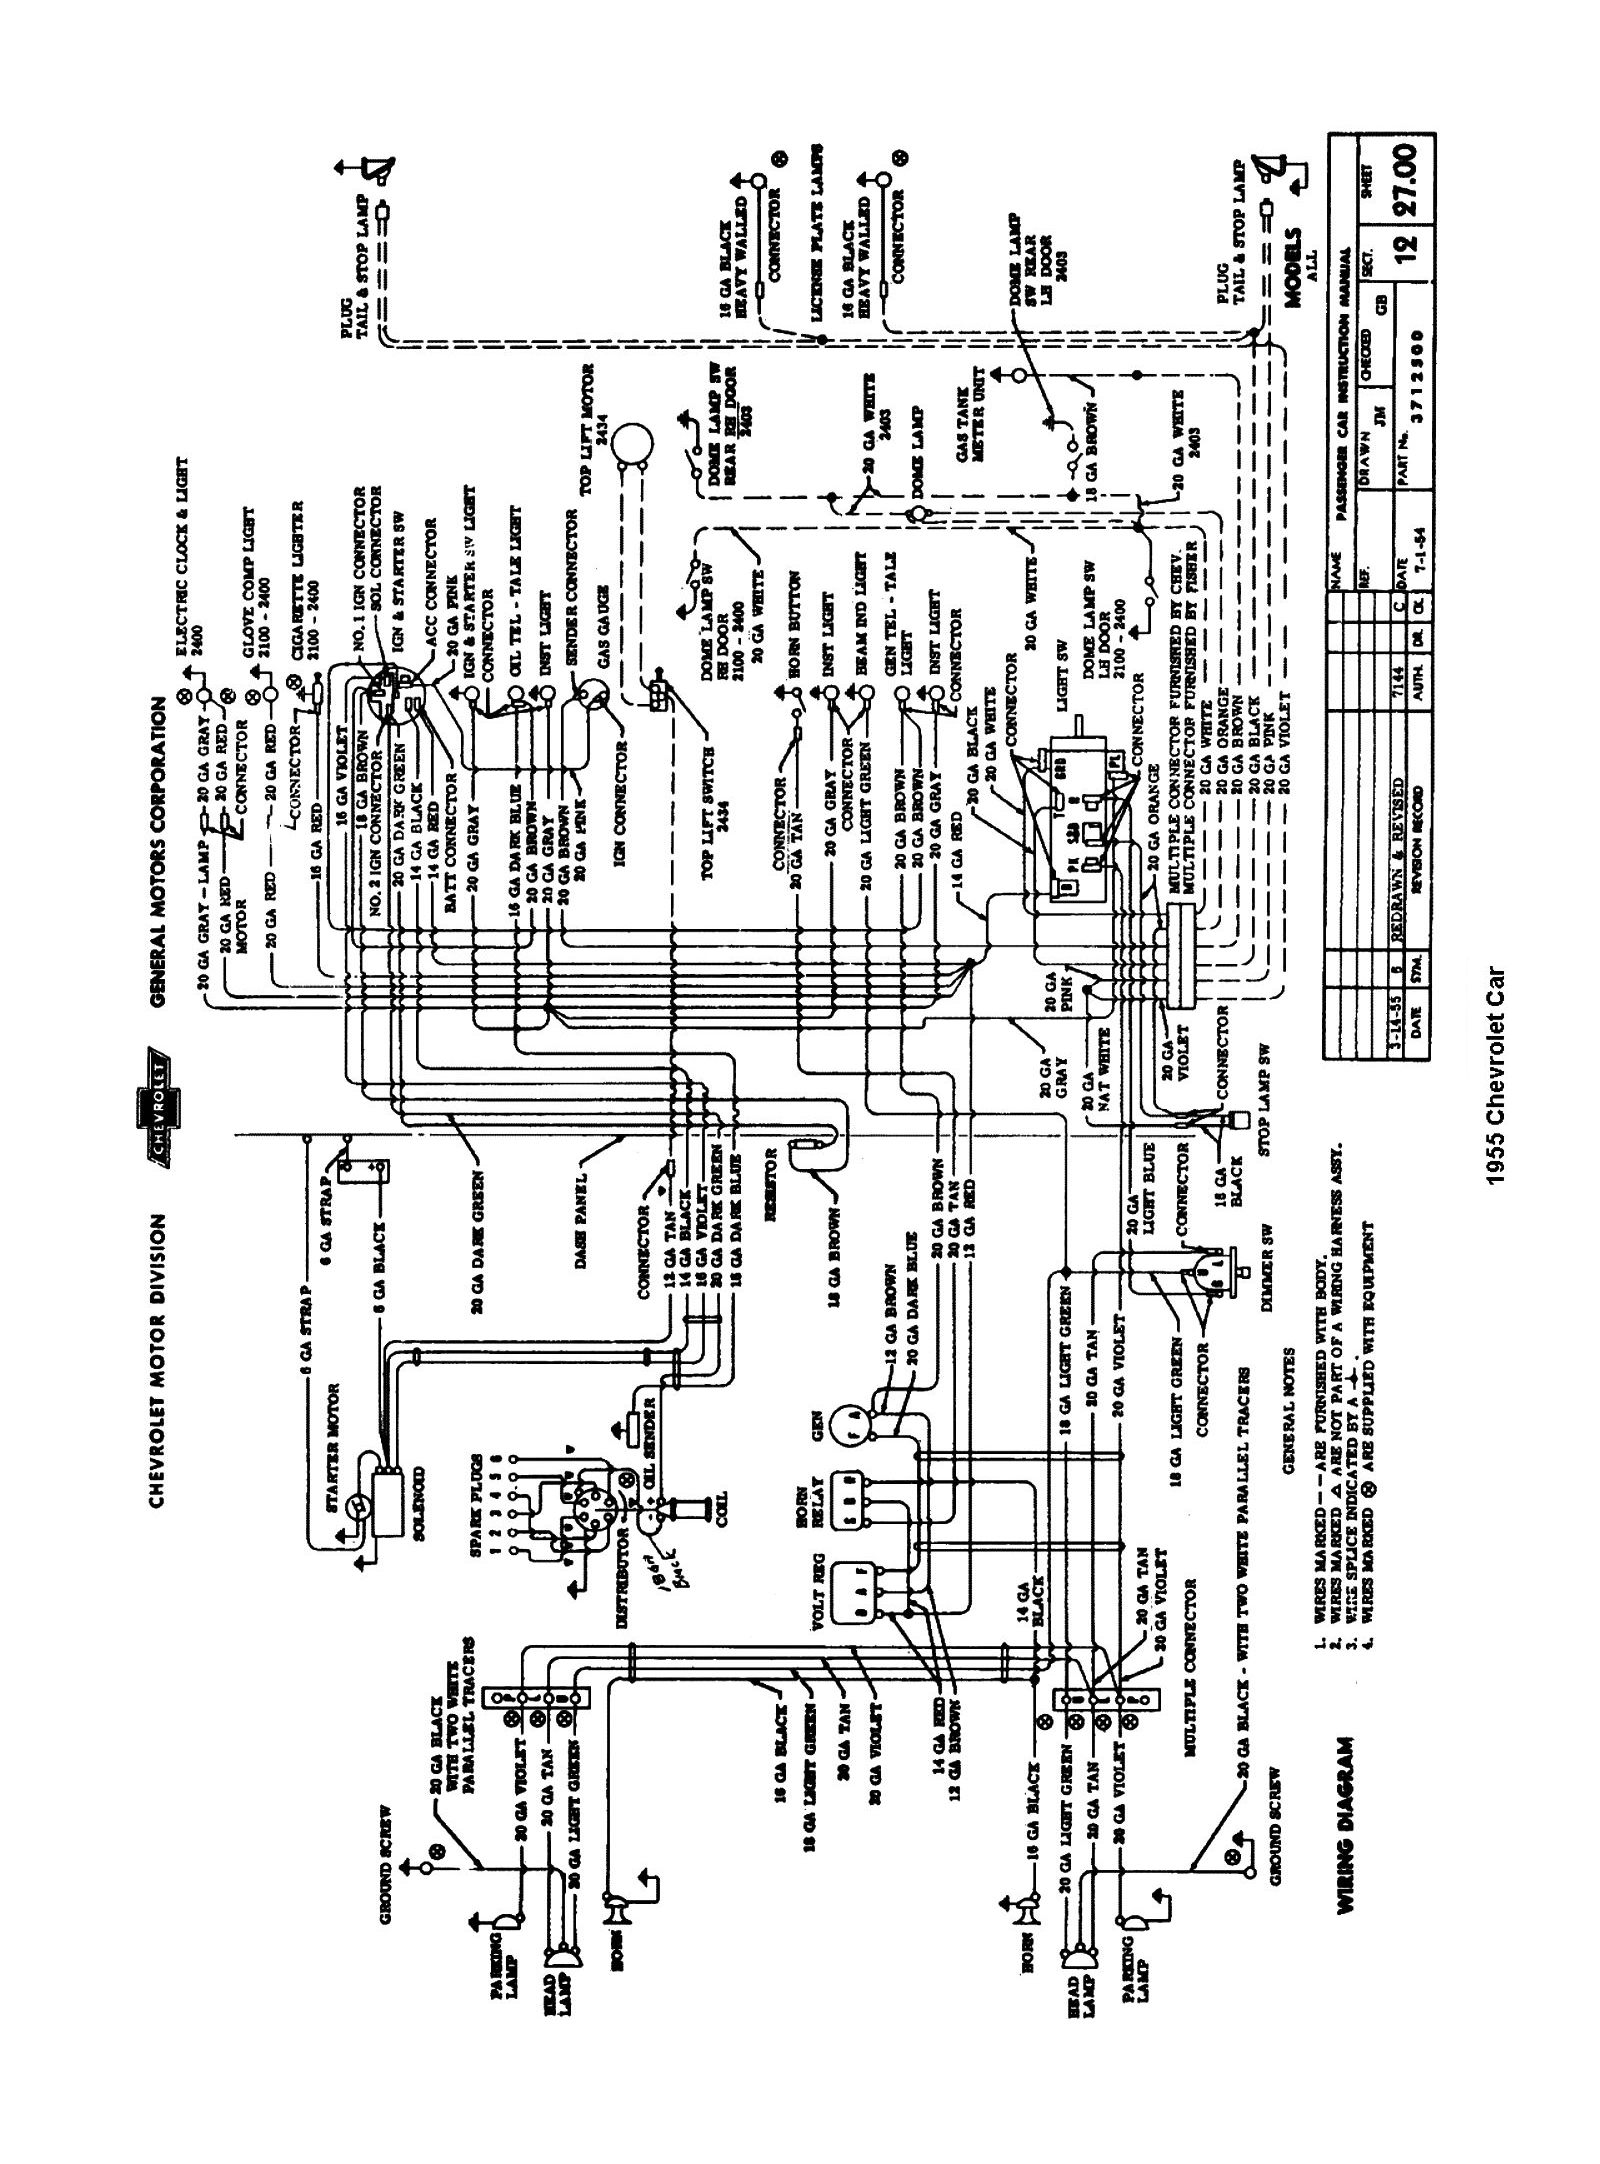 55car1 1955 chevy wiring diagram 1955 wiring diagrams instruction 1953 chevy bel air wiring diagram at reclaimingppi.co